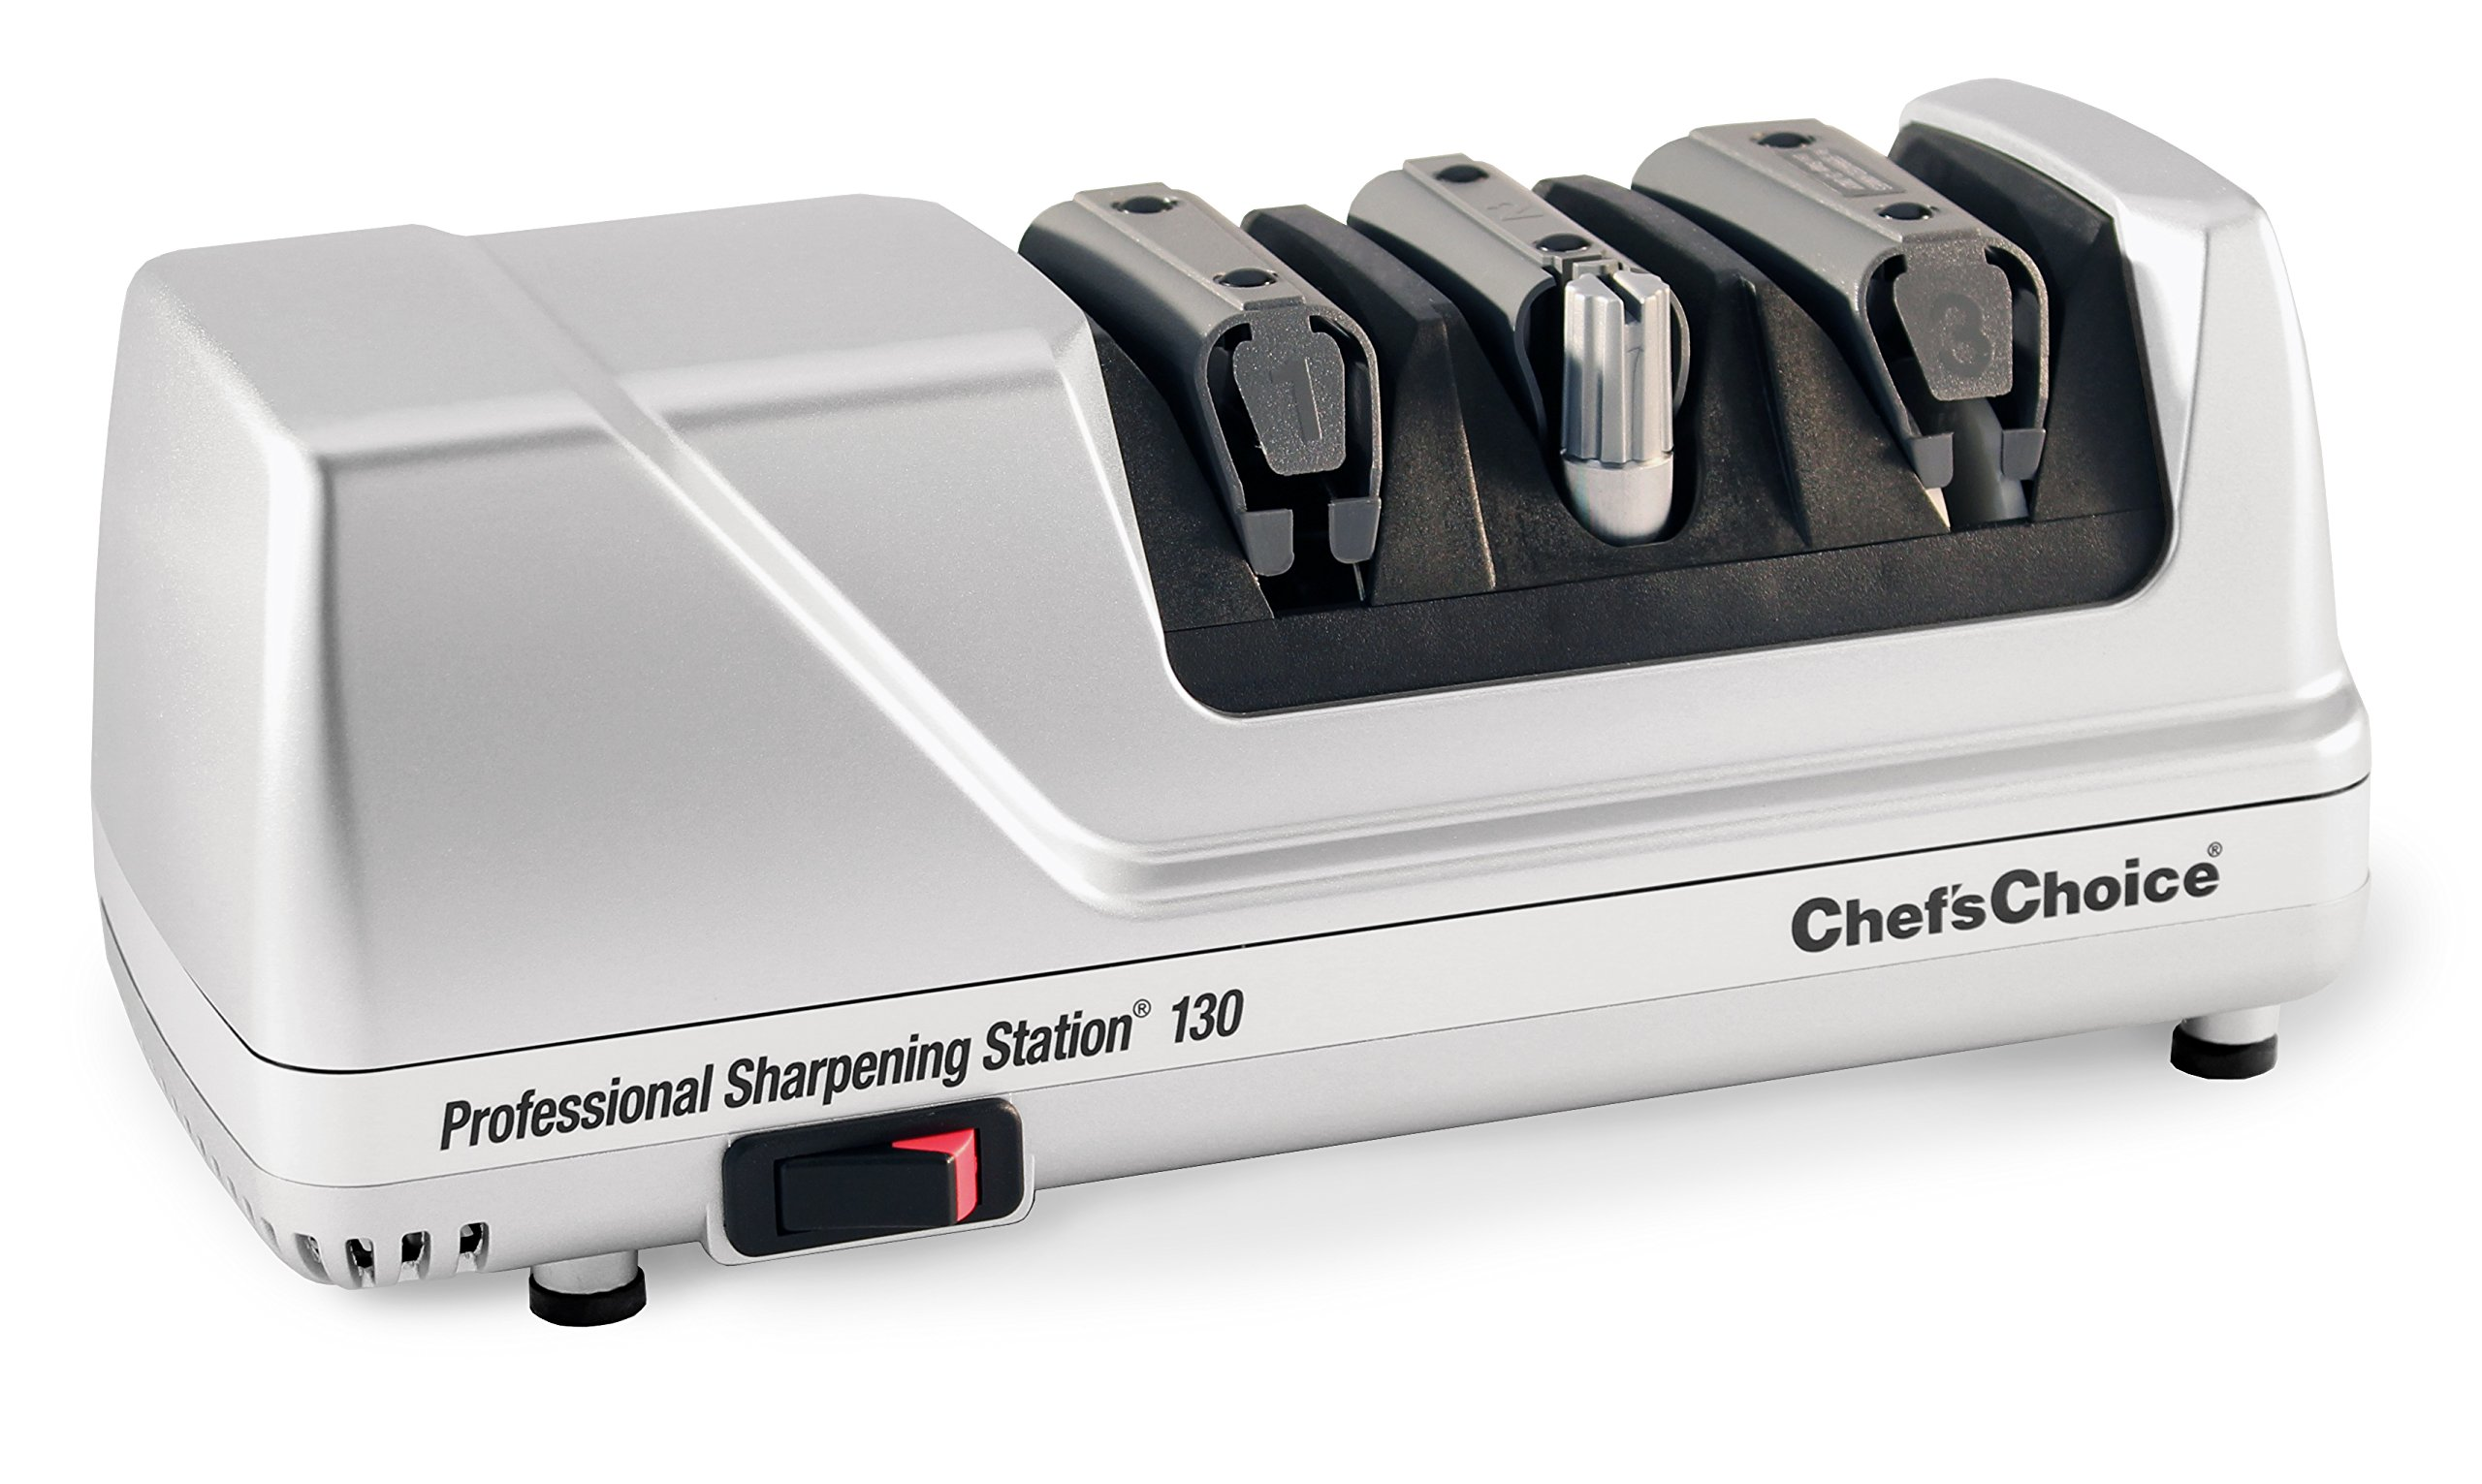 Chef'sChoice Professional Electric Knife Sharpening Station for Straight and Serrated Knives Diamond Abrasives and Precision Angle Guides, 3-Stage, Silver